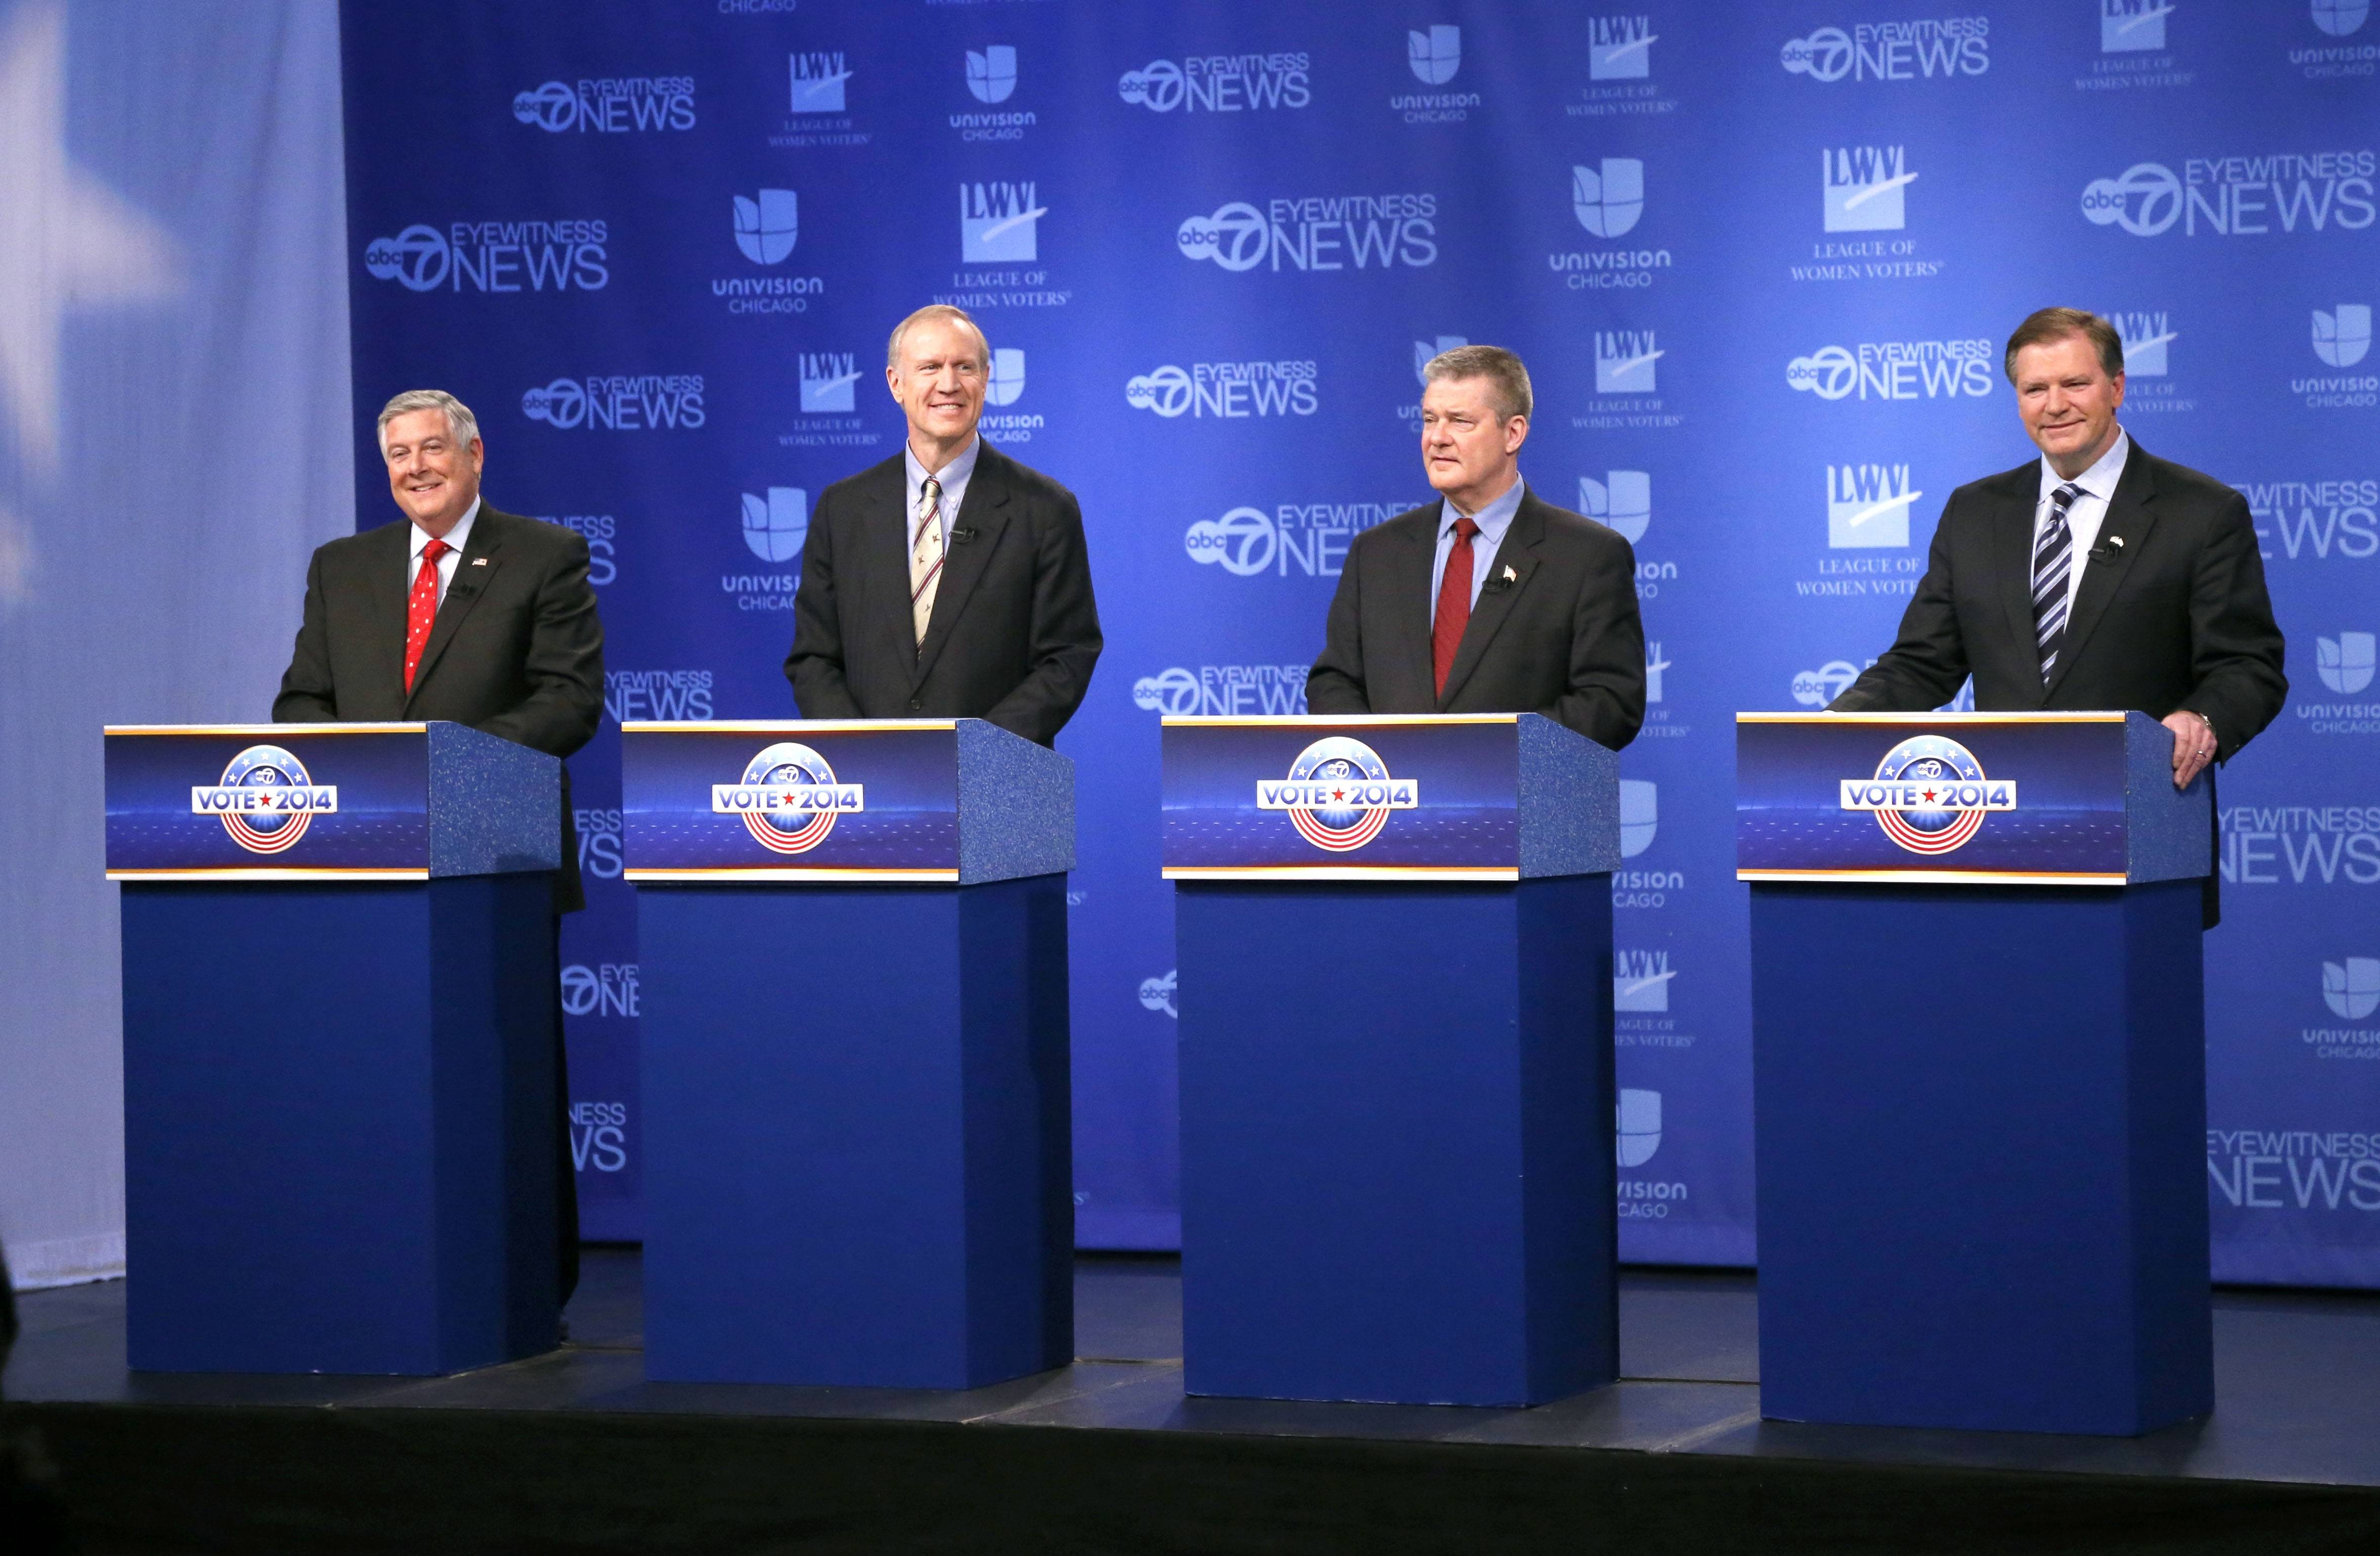 Republican gubernatorial candidates from left, state Sen. Kirk Dillard, Bruce Rauner, state Treasurer Dan Rutherford and state Sen. Bill Brady debated Thursday in Chicago.